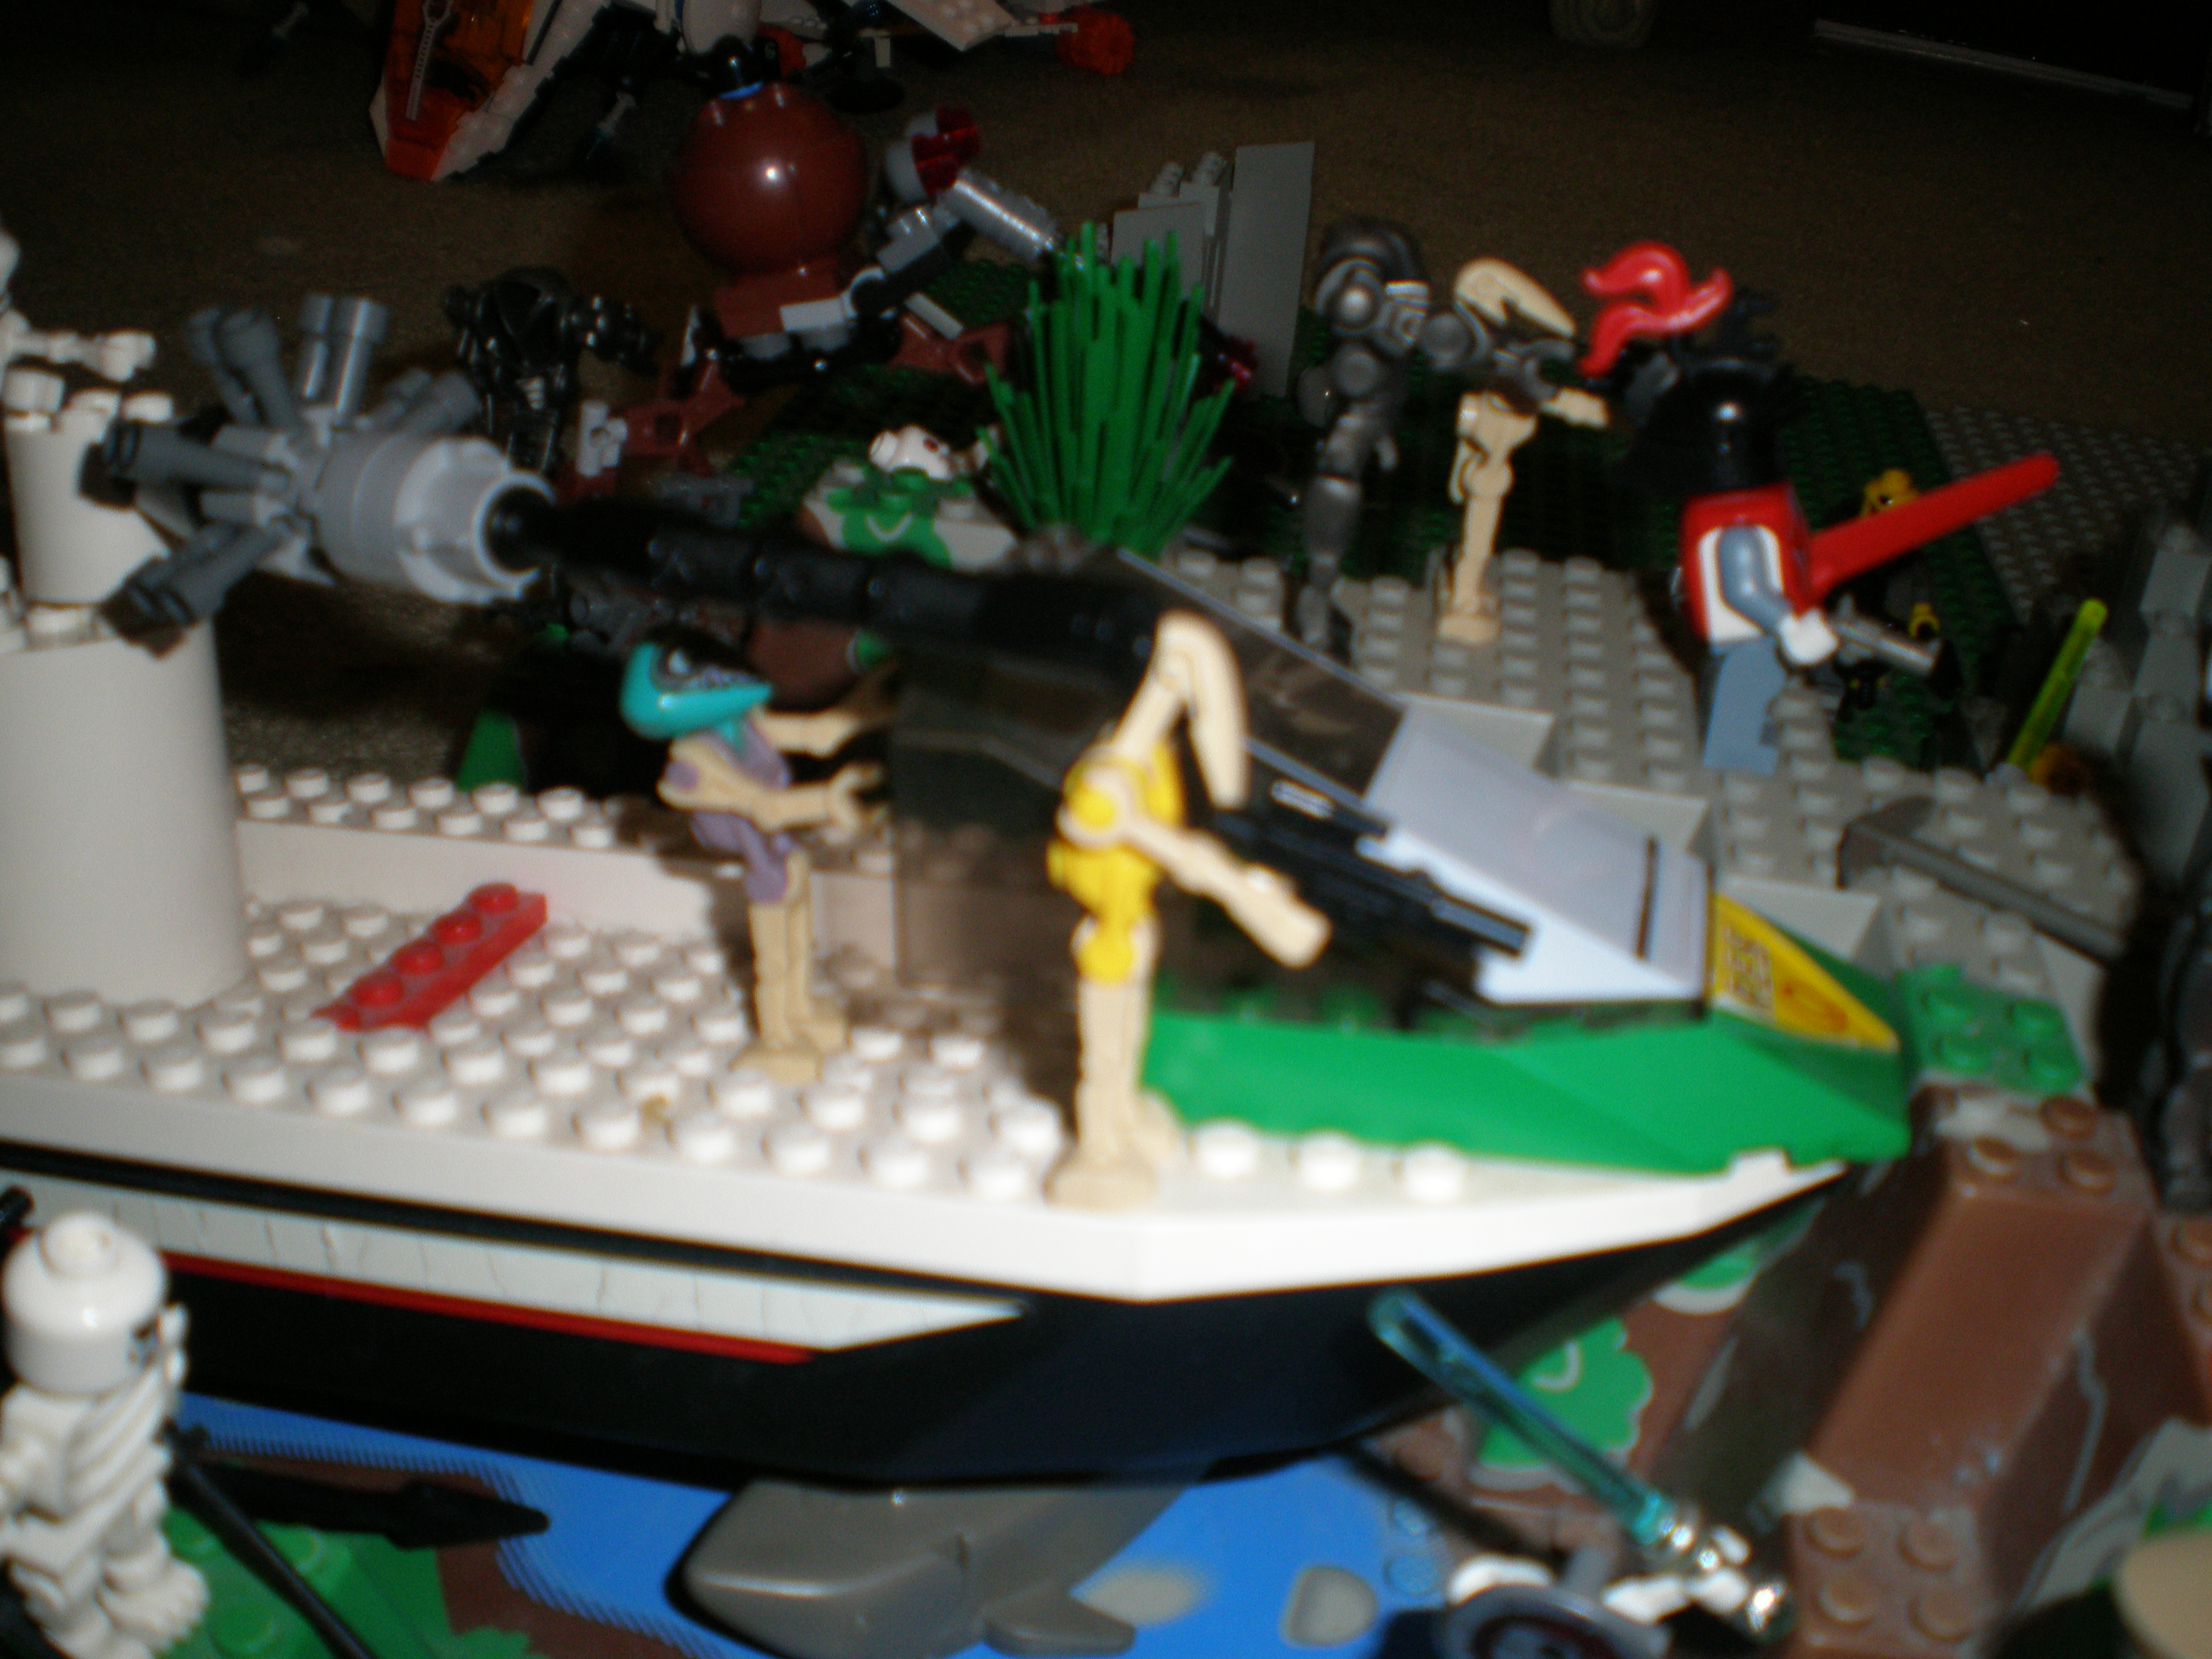 armagendon_lego_battle_007.jpg